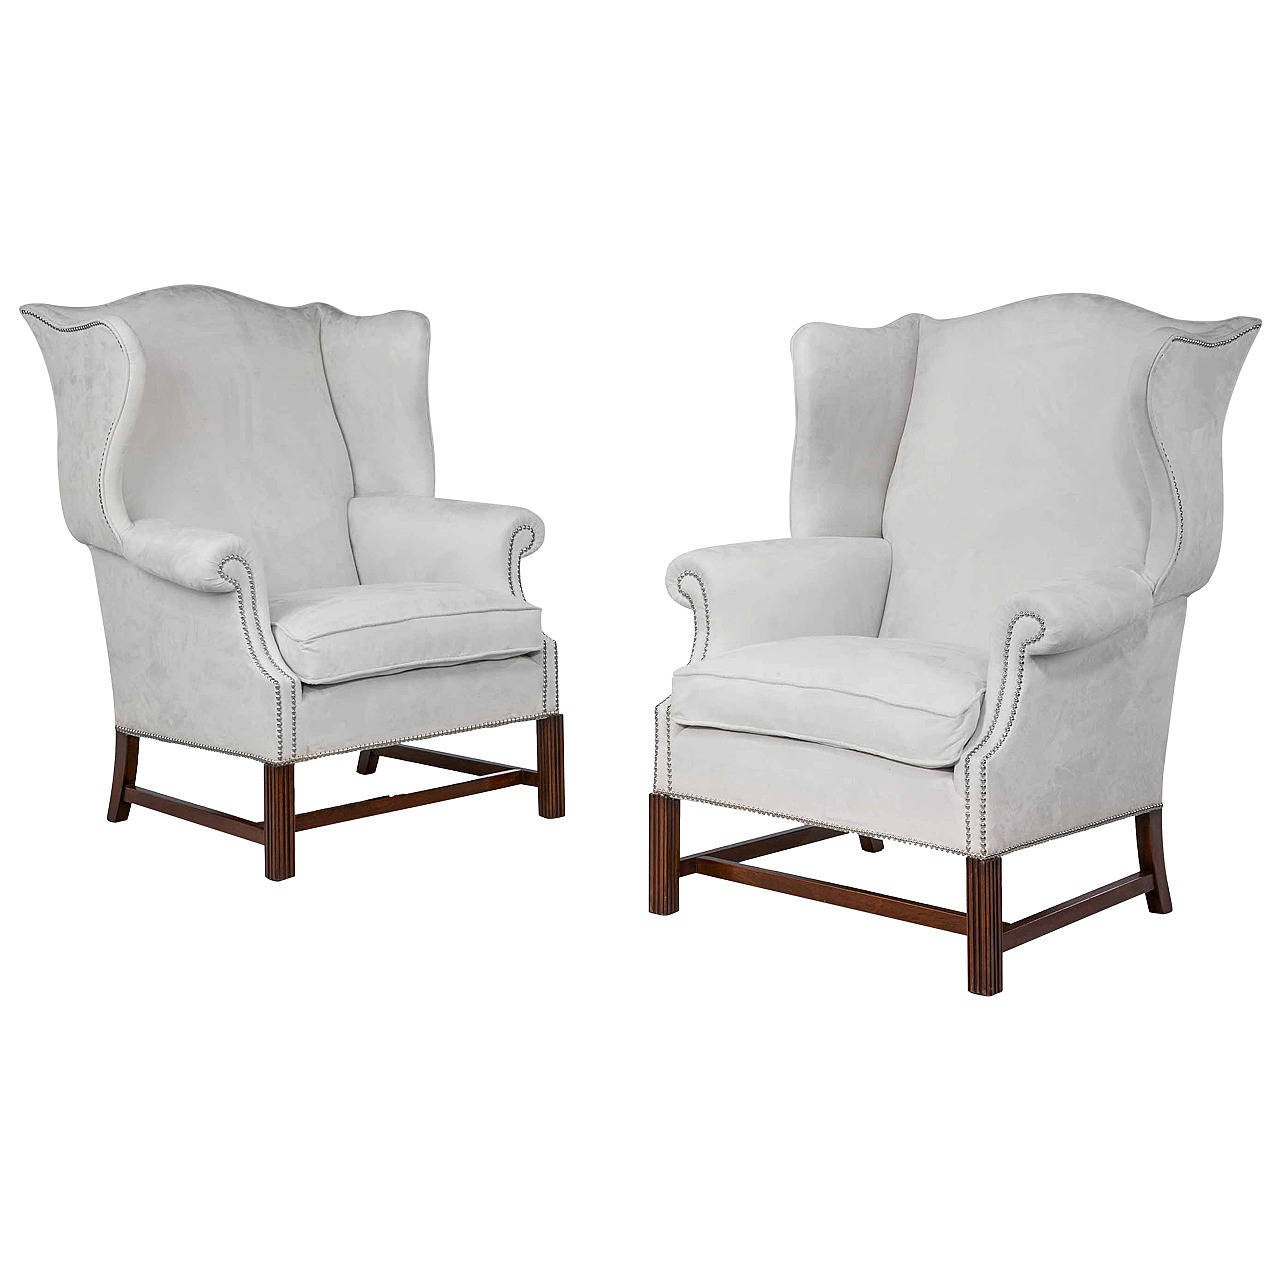 Pair of Mahogany Framed Wing Chairs For Sale at 1stdibs